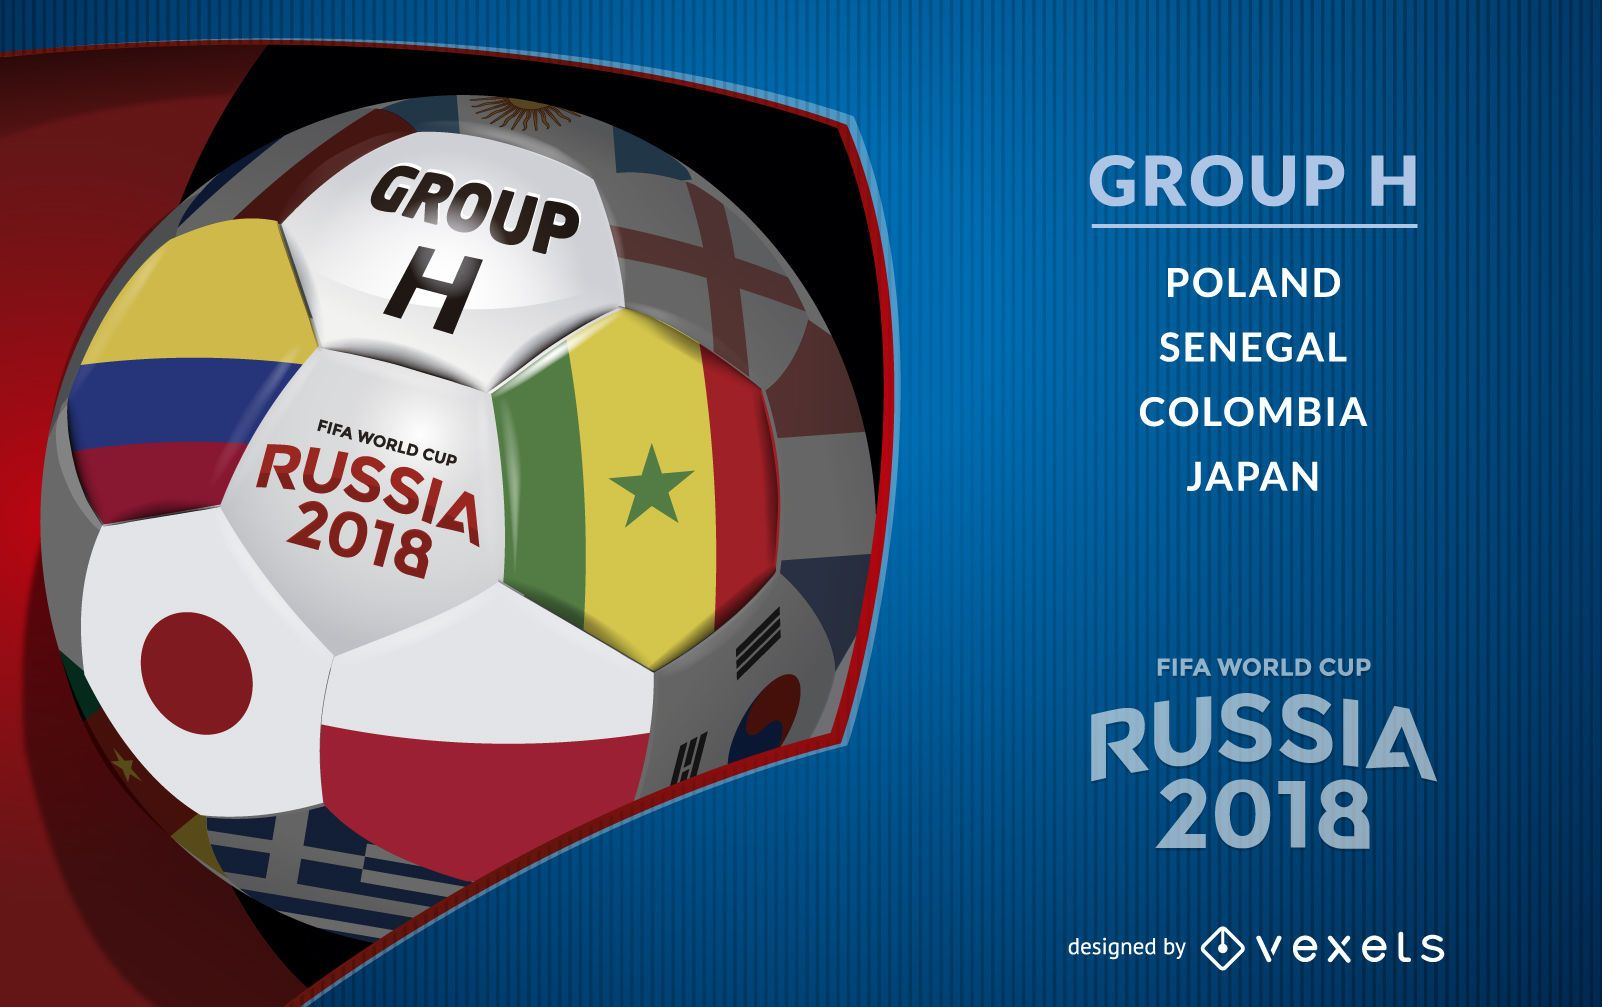 Russia 2018 Group H poster design